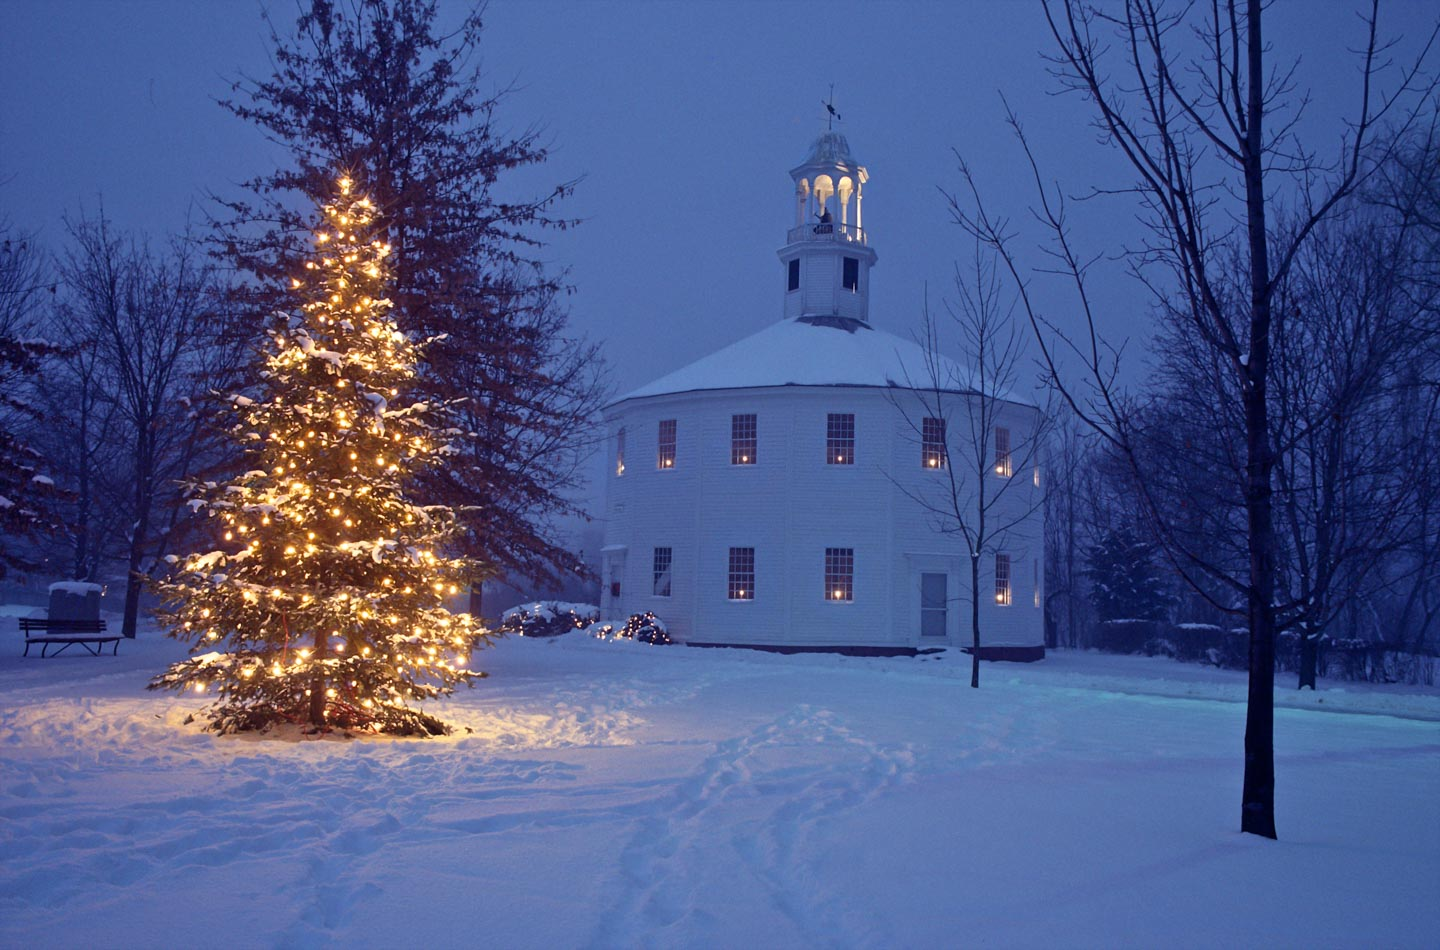 the old round church with lights in the windows and lit tree in front in the blue color of dusk